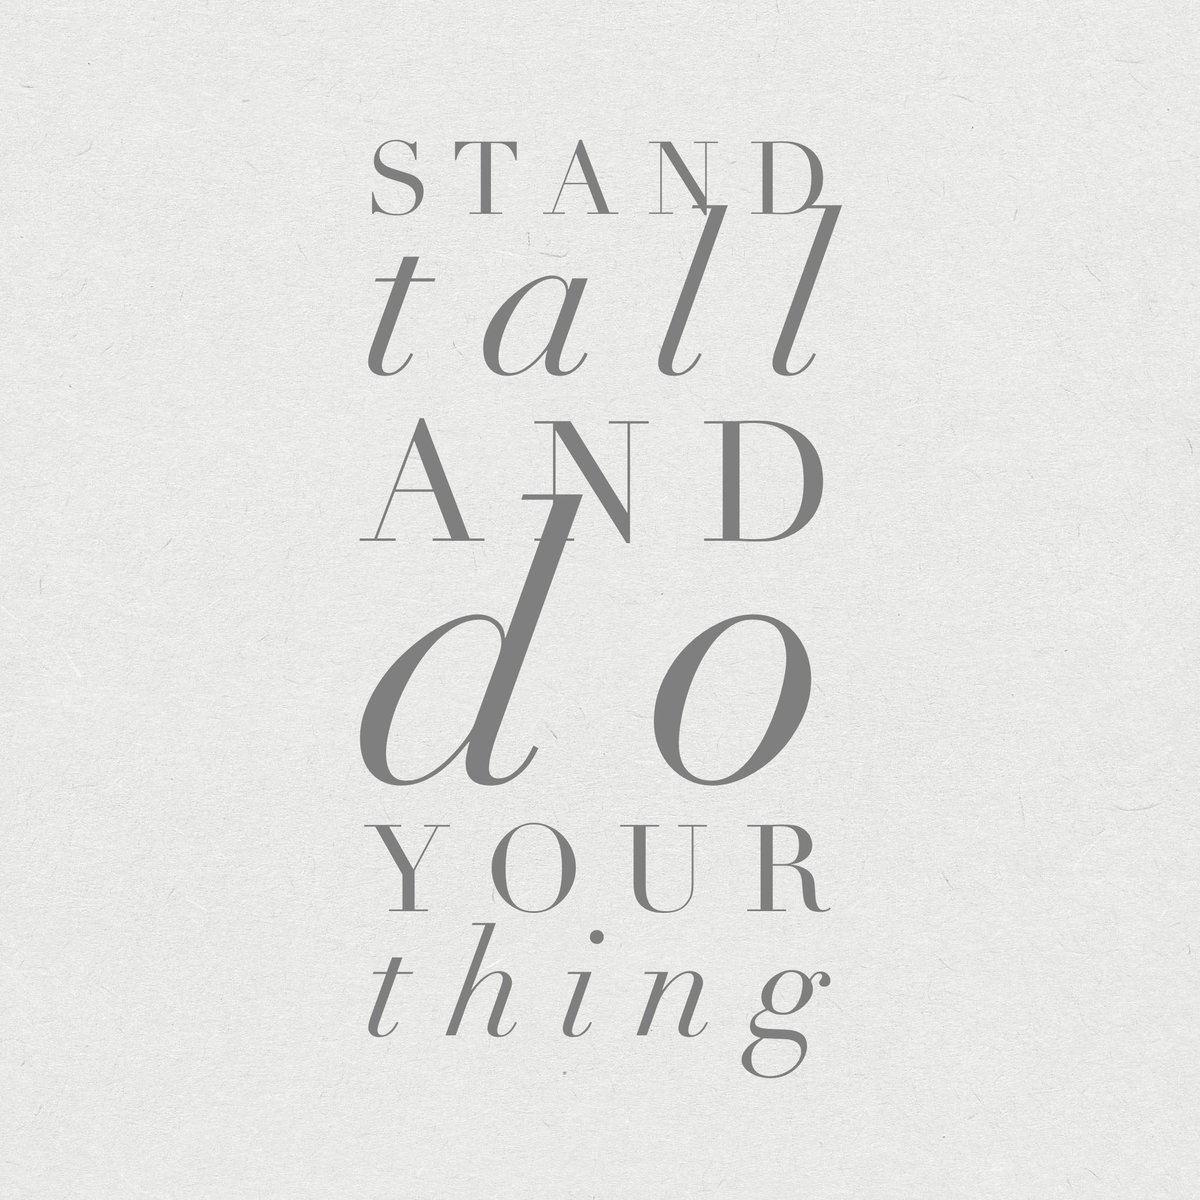 Happy Friday  #doyourthing #inspiration #creativity #selfconfidence #weekend #rolemodels #leadership<br>http://pic.twitter.com/21ten1eZNT